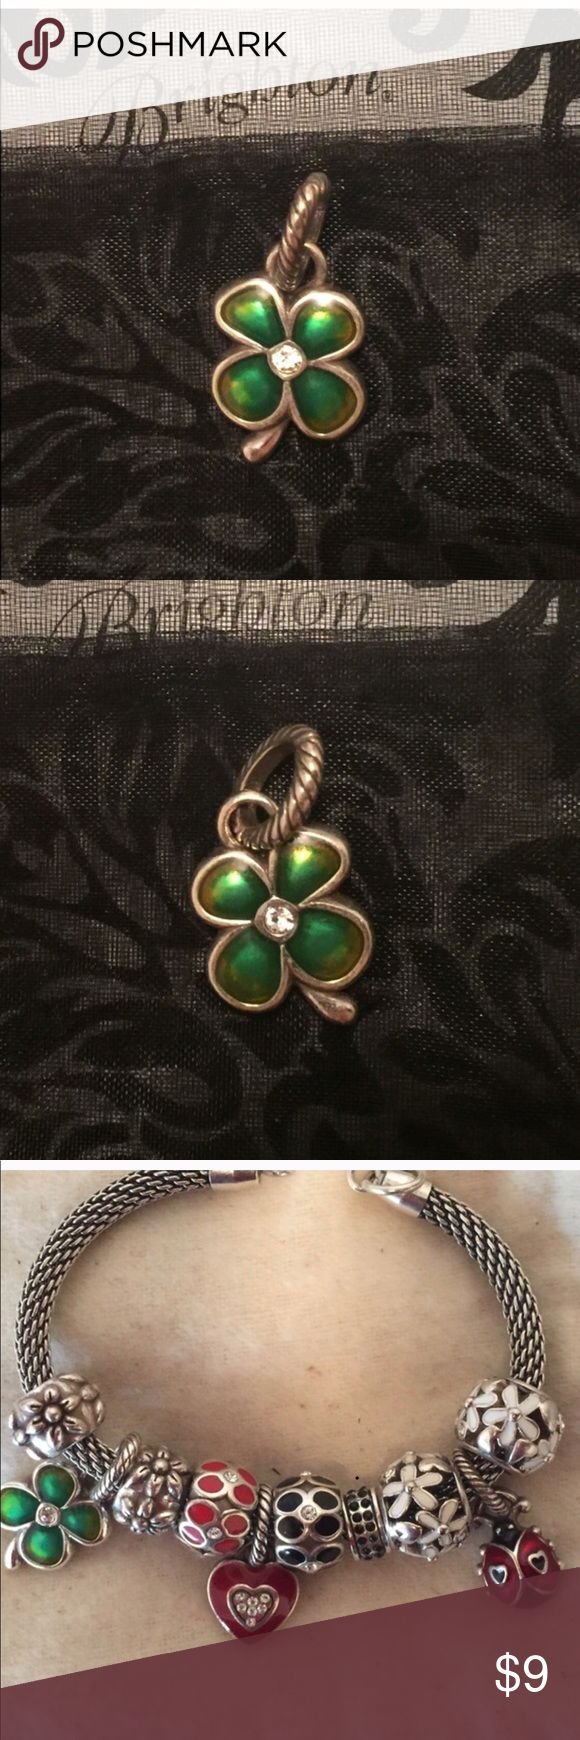 "Coming soon! Brighton green 4-leaf clover charm 🍀 Brighton ABC 4-leaf clover charm  🍀 Enamel finish 🍀 Swarovski crystal in middle 🍀Green design on both sides 🍀 5/8"" wide by 5/8"" High 🍀 Retired 🍀 Like new condition   See design idea in last photo.   **More Brighton beads, charms, spacers, and jewelry in closet, including most items in last photo. Add 2 or more listings to a Bundle and save 10% on all of them, plus pay only one shipping fee!** Brighton Jewelry"